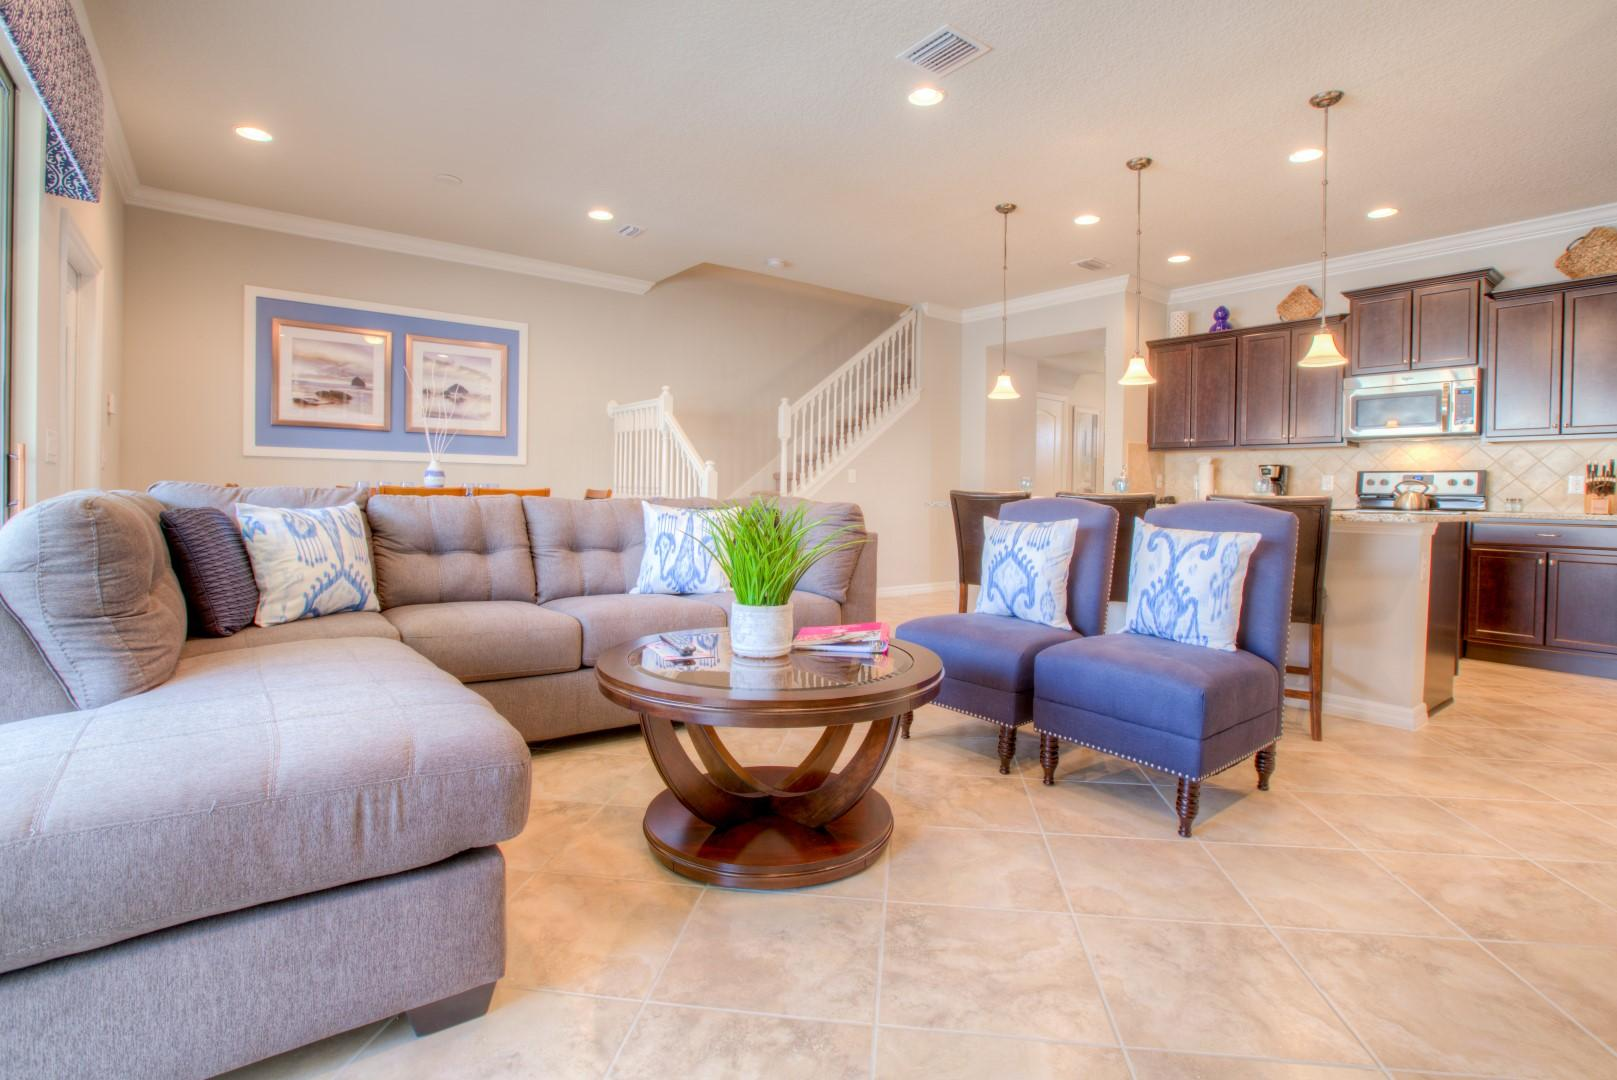 Property Image 1 - Classy Townhome with Resort Lanai in Windsor at Westside